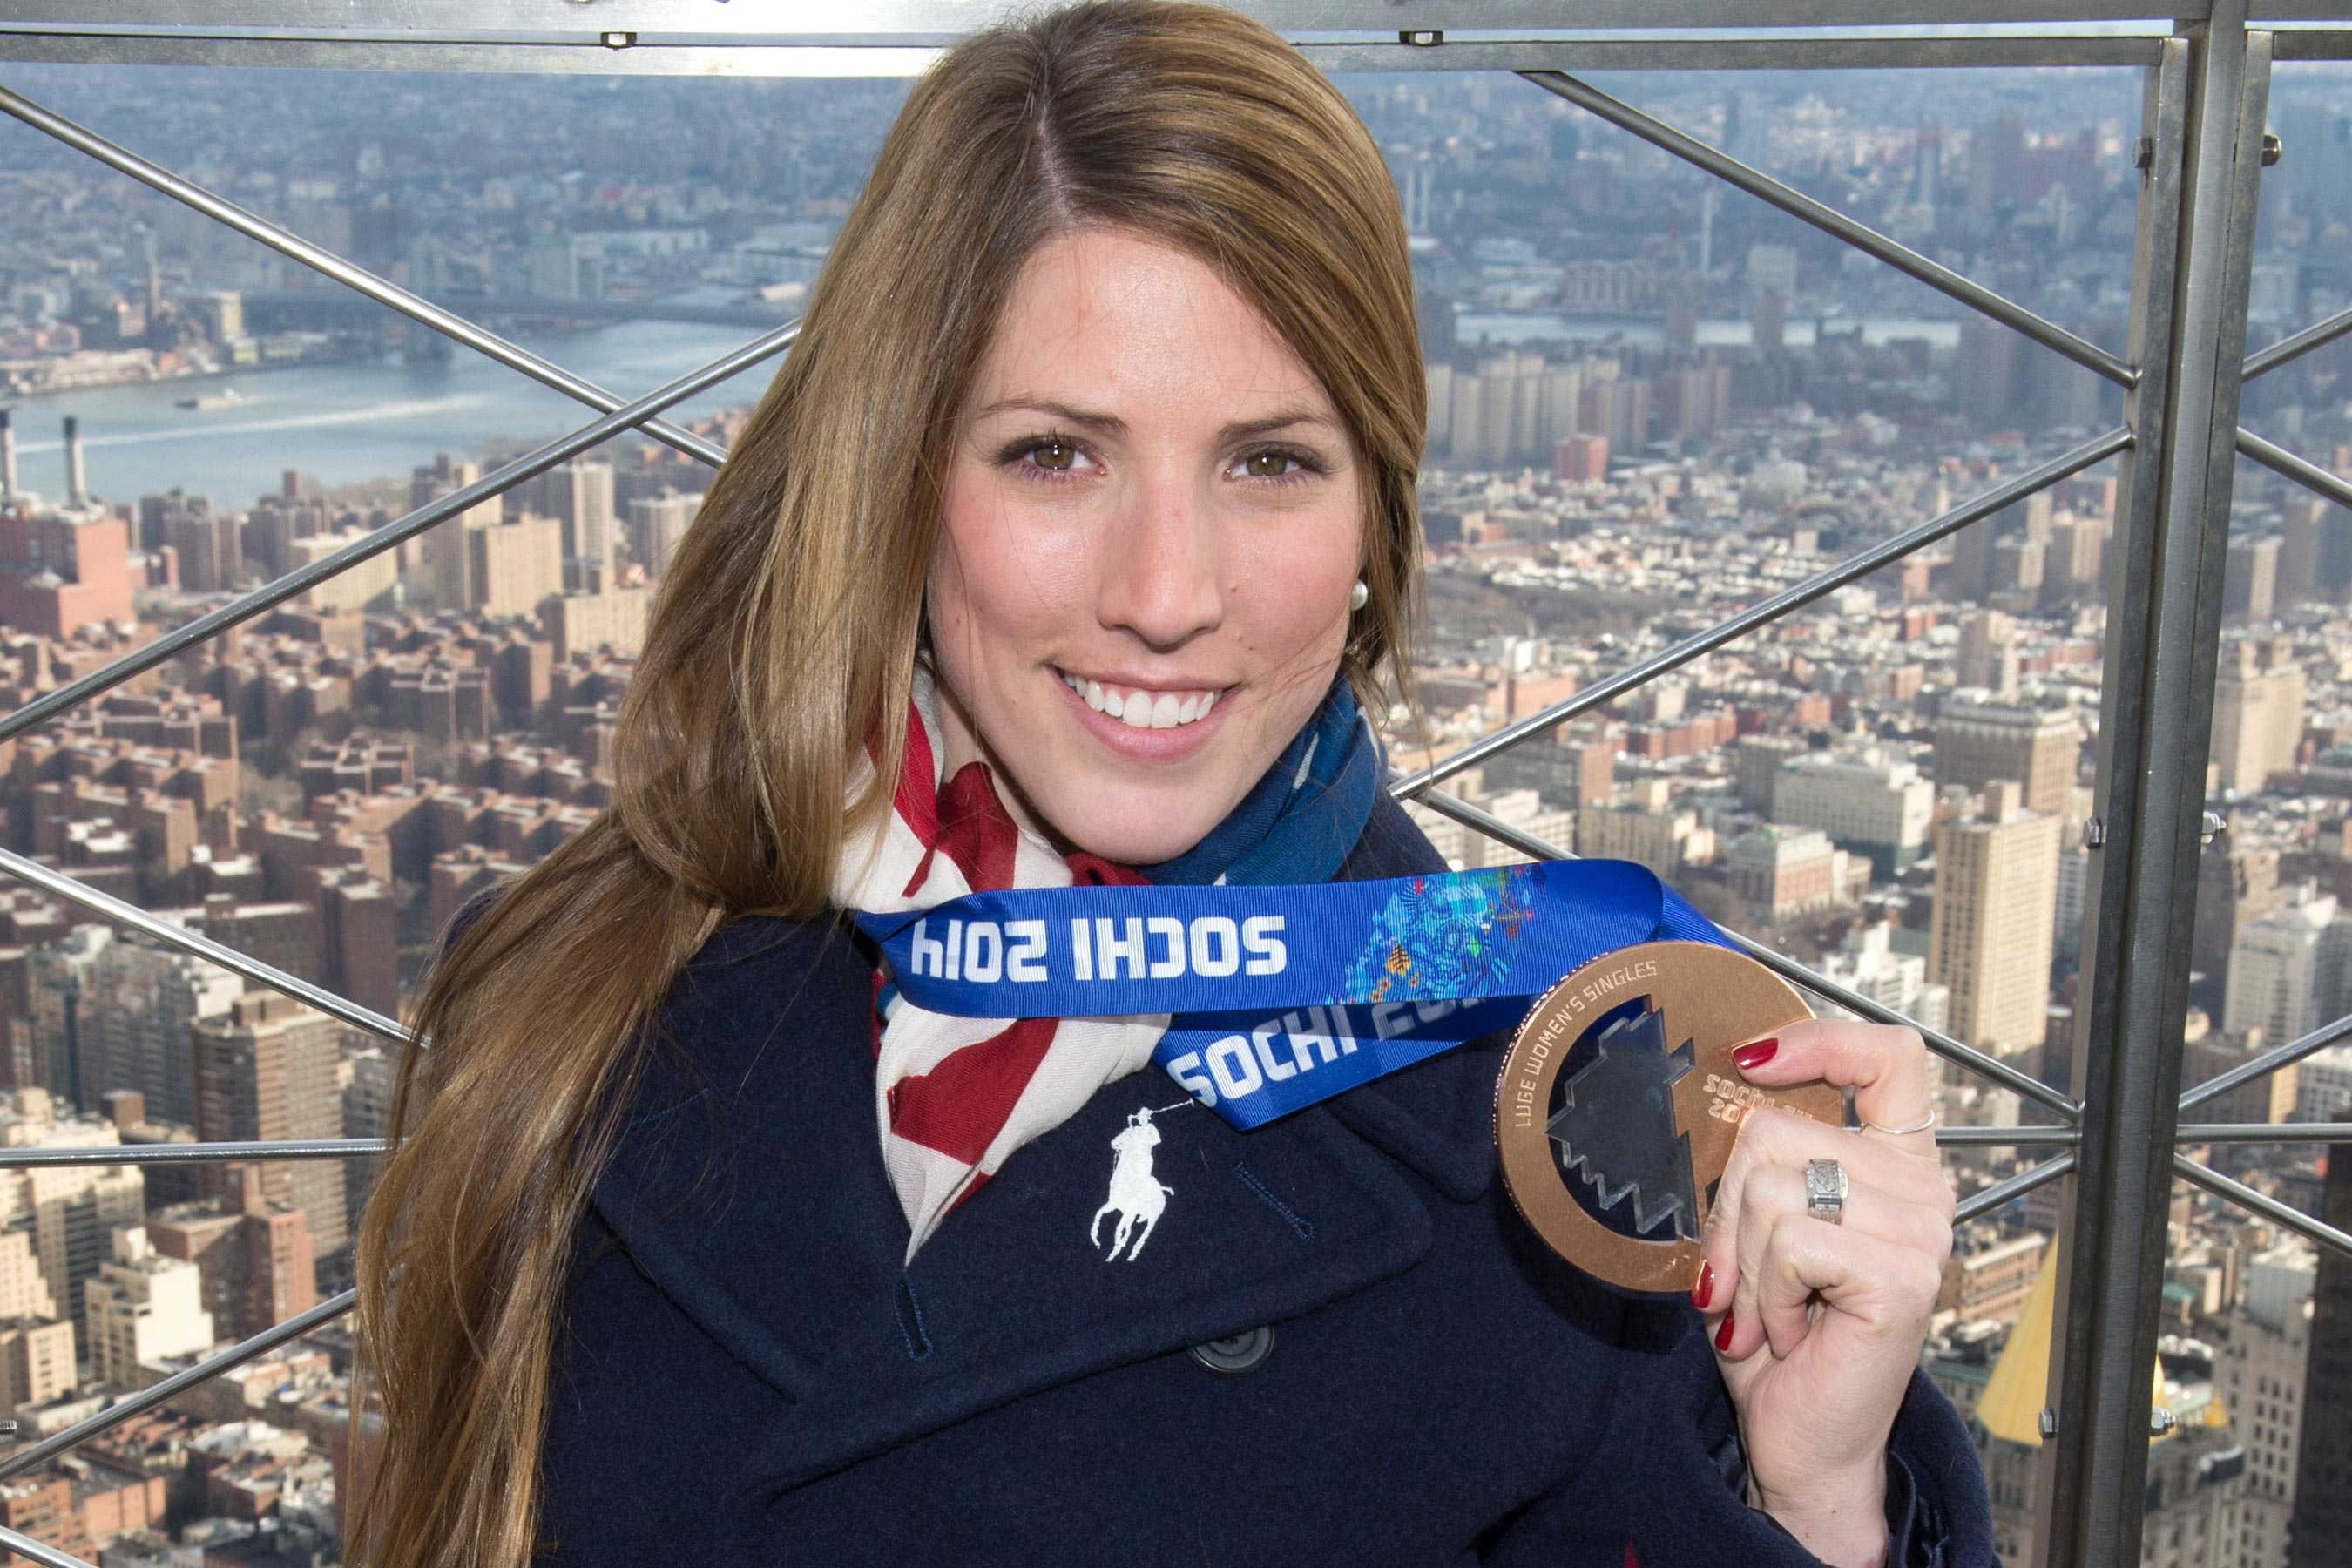 Olympics Opening Ceremony: Who is U.S. flag bearer Erin Hamlin?